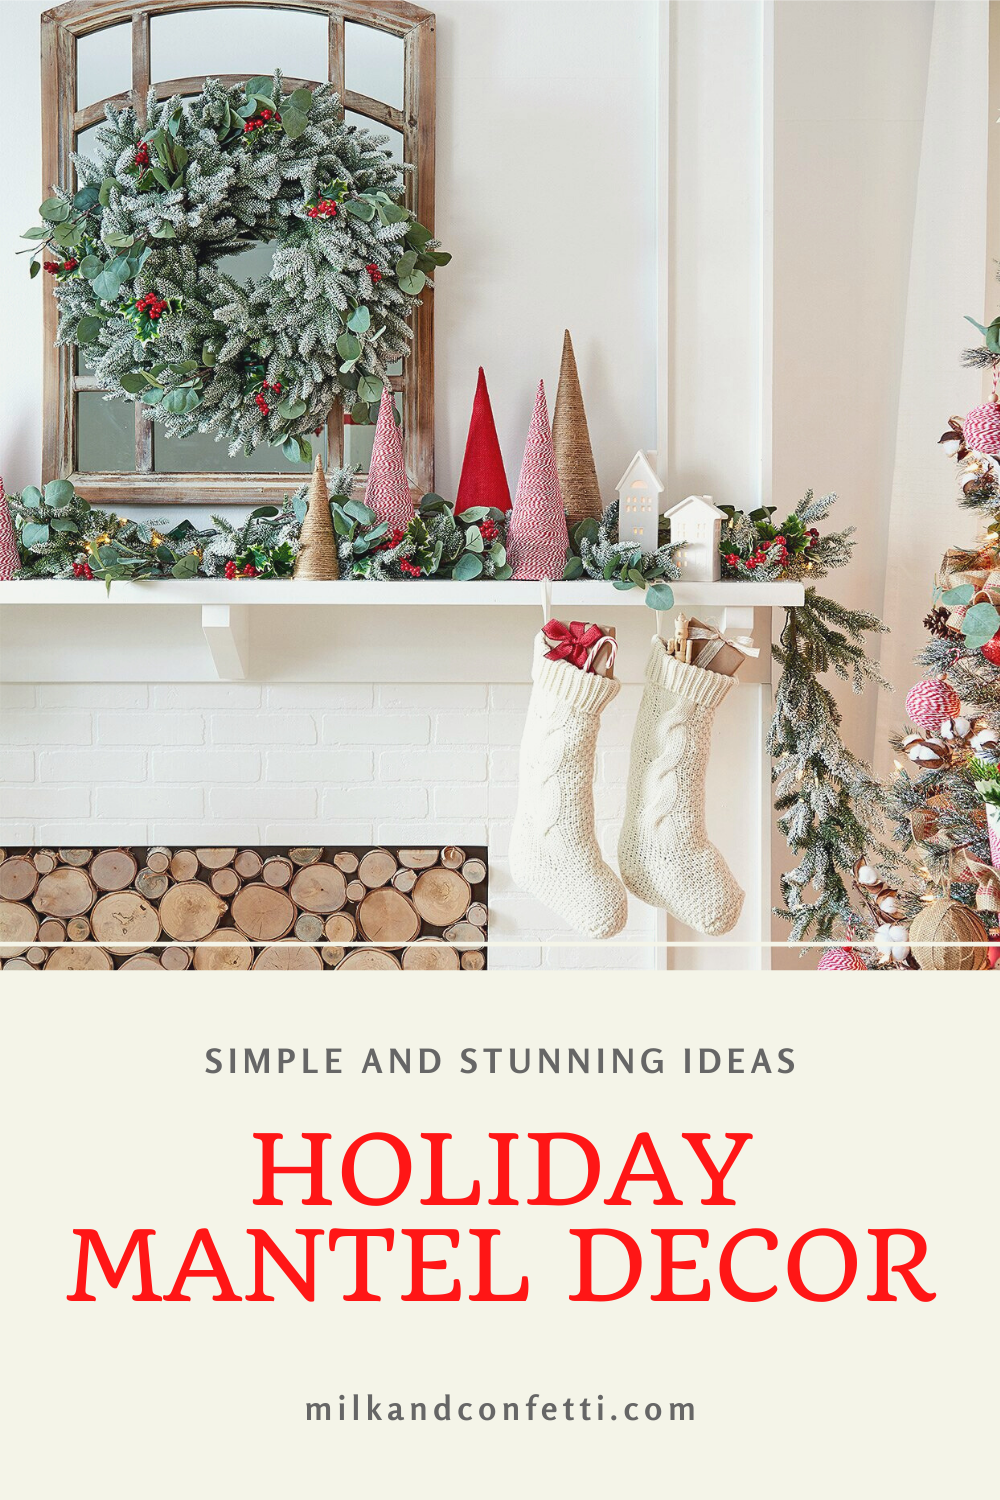 A white Christmas holiday fireplace with a mantel decorated with greenery, a mirror, bottle brush trees and stockings for a stylish and modern look.